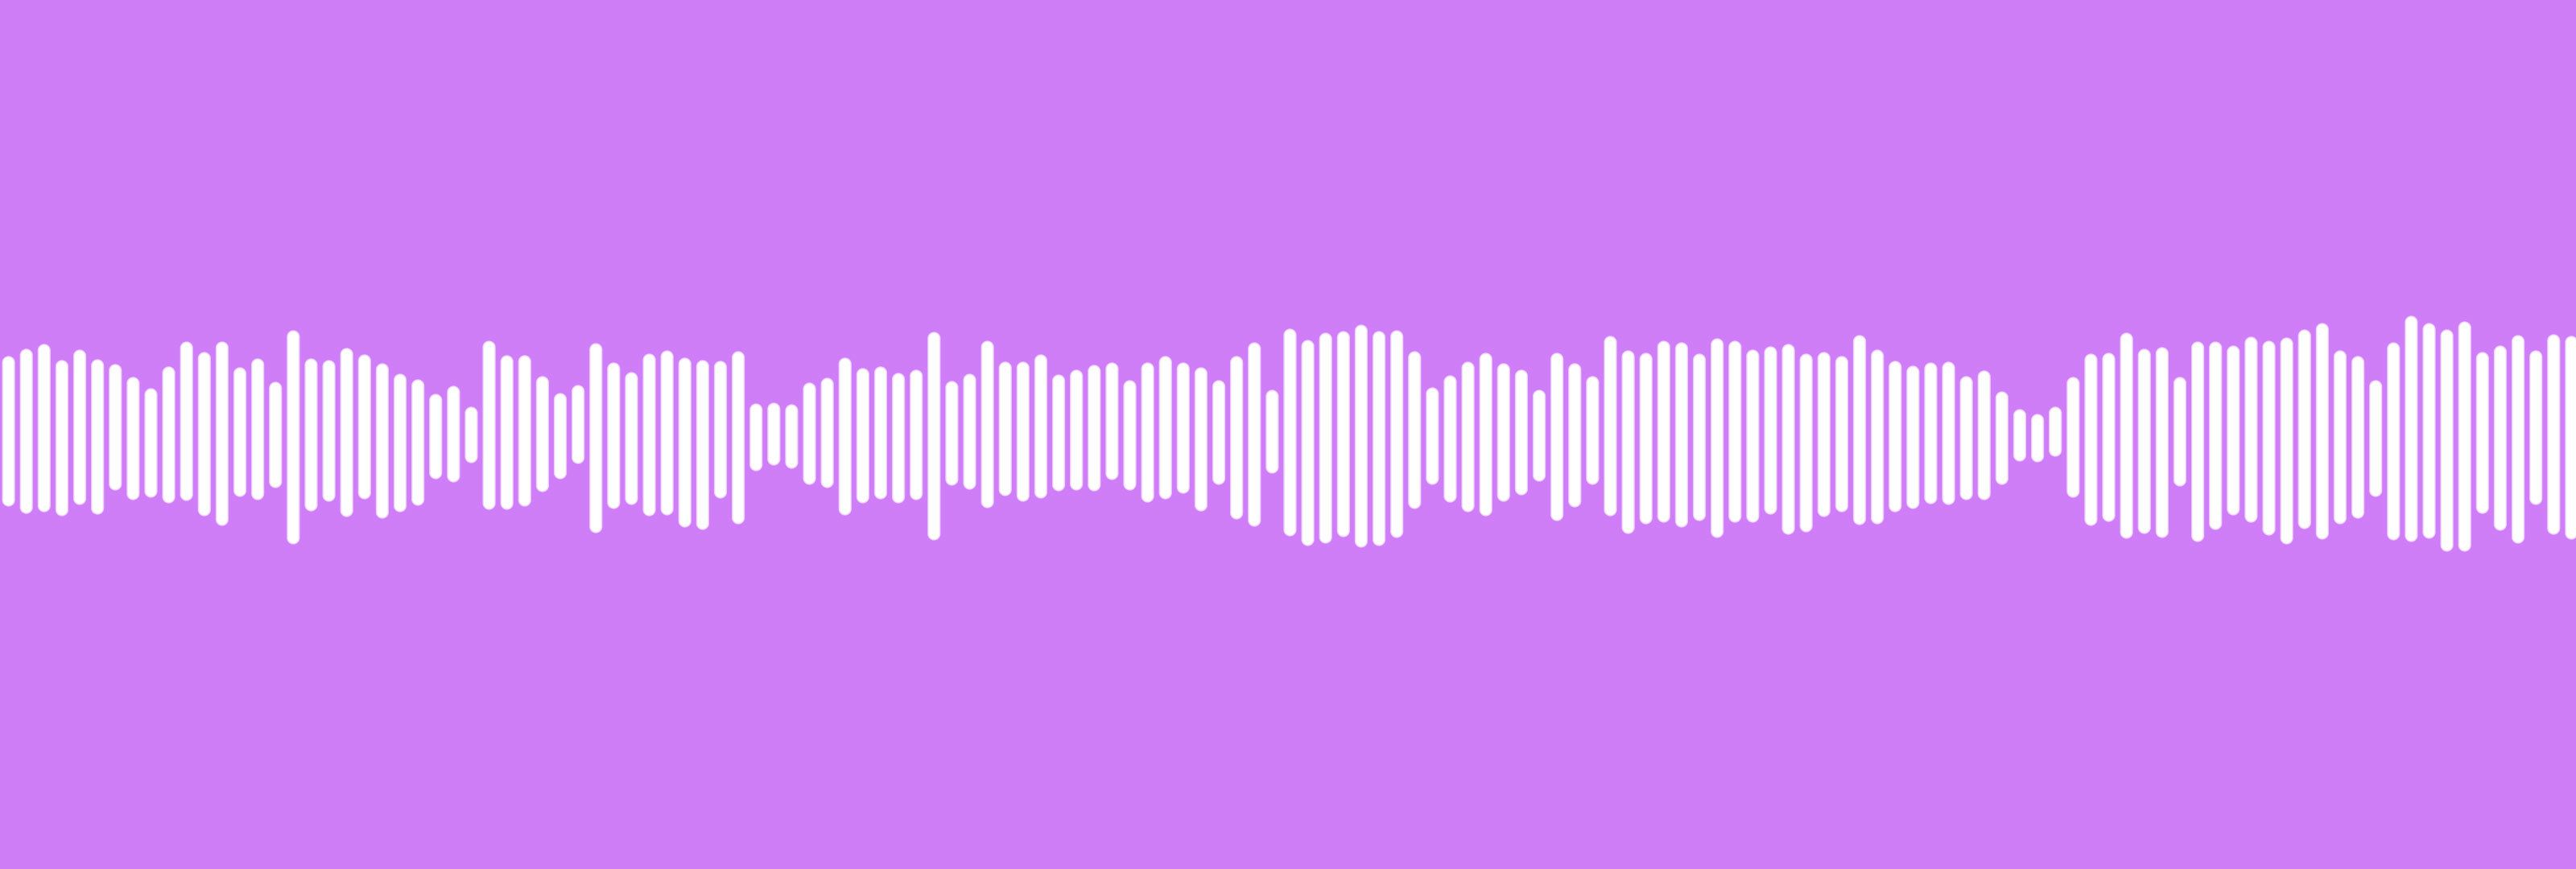 How To Make Your VoiceOver Sound Better in Premiere Pro